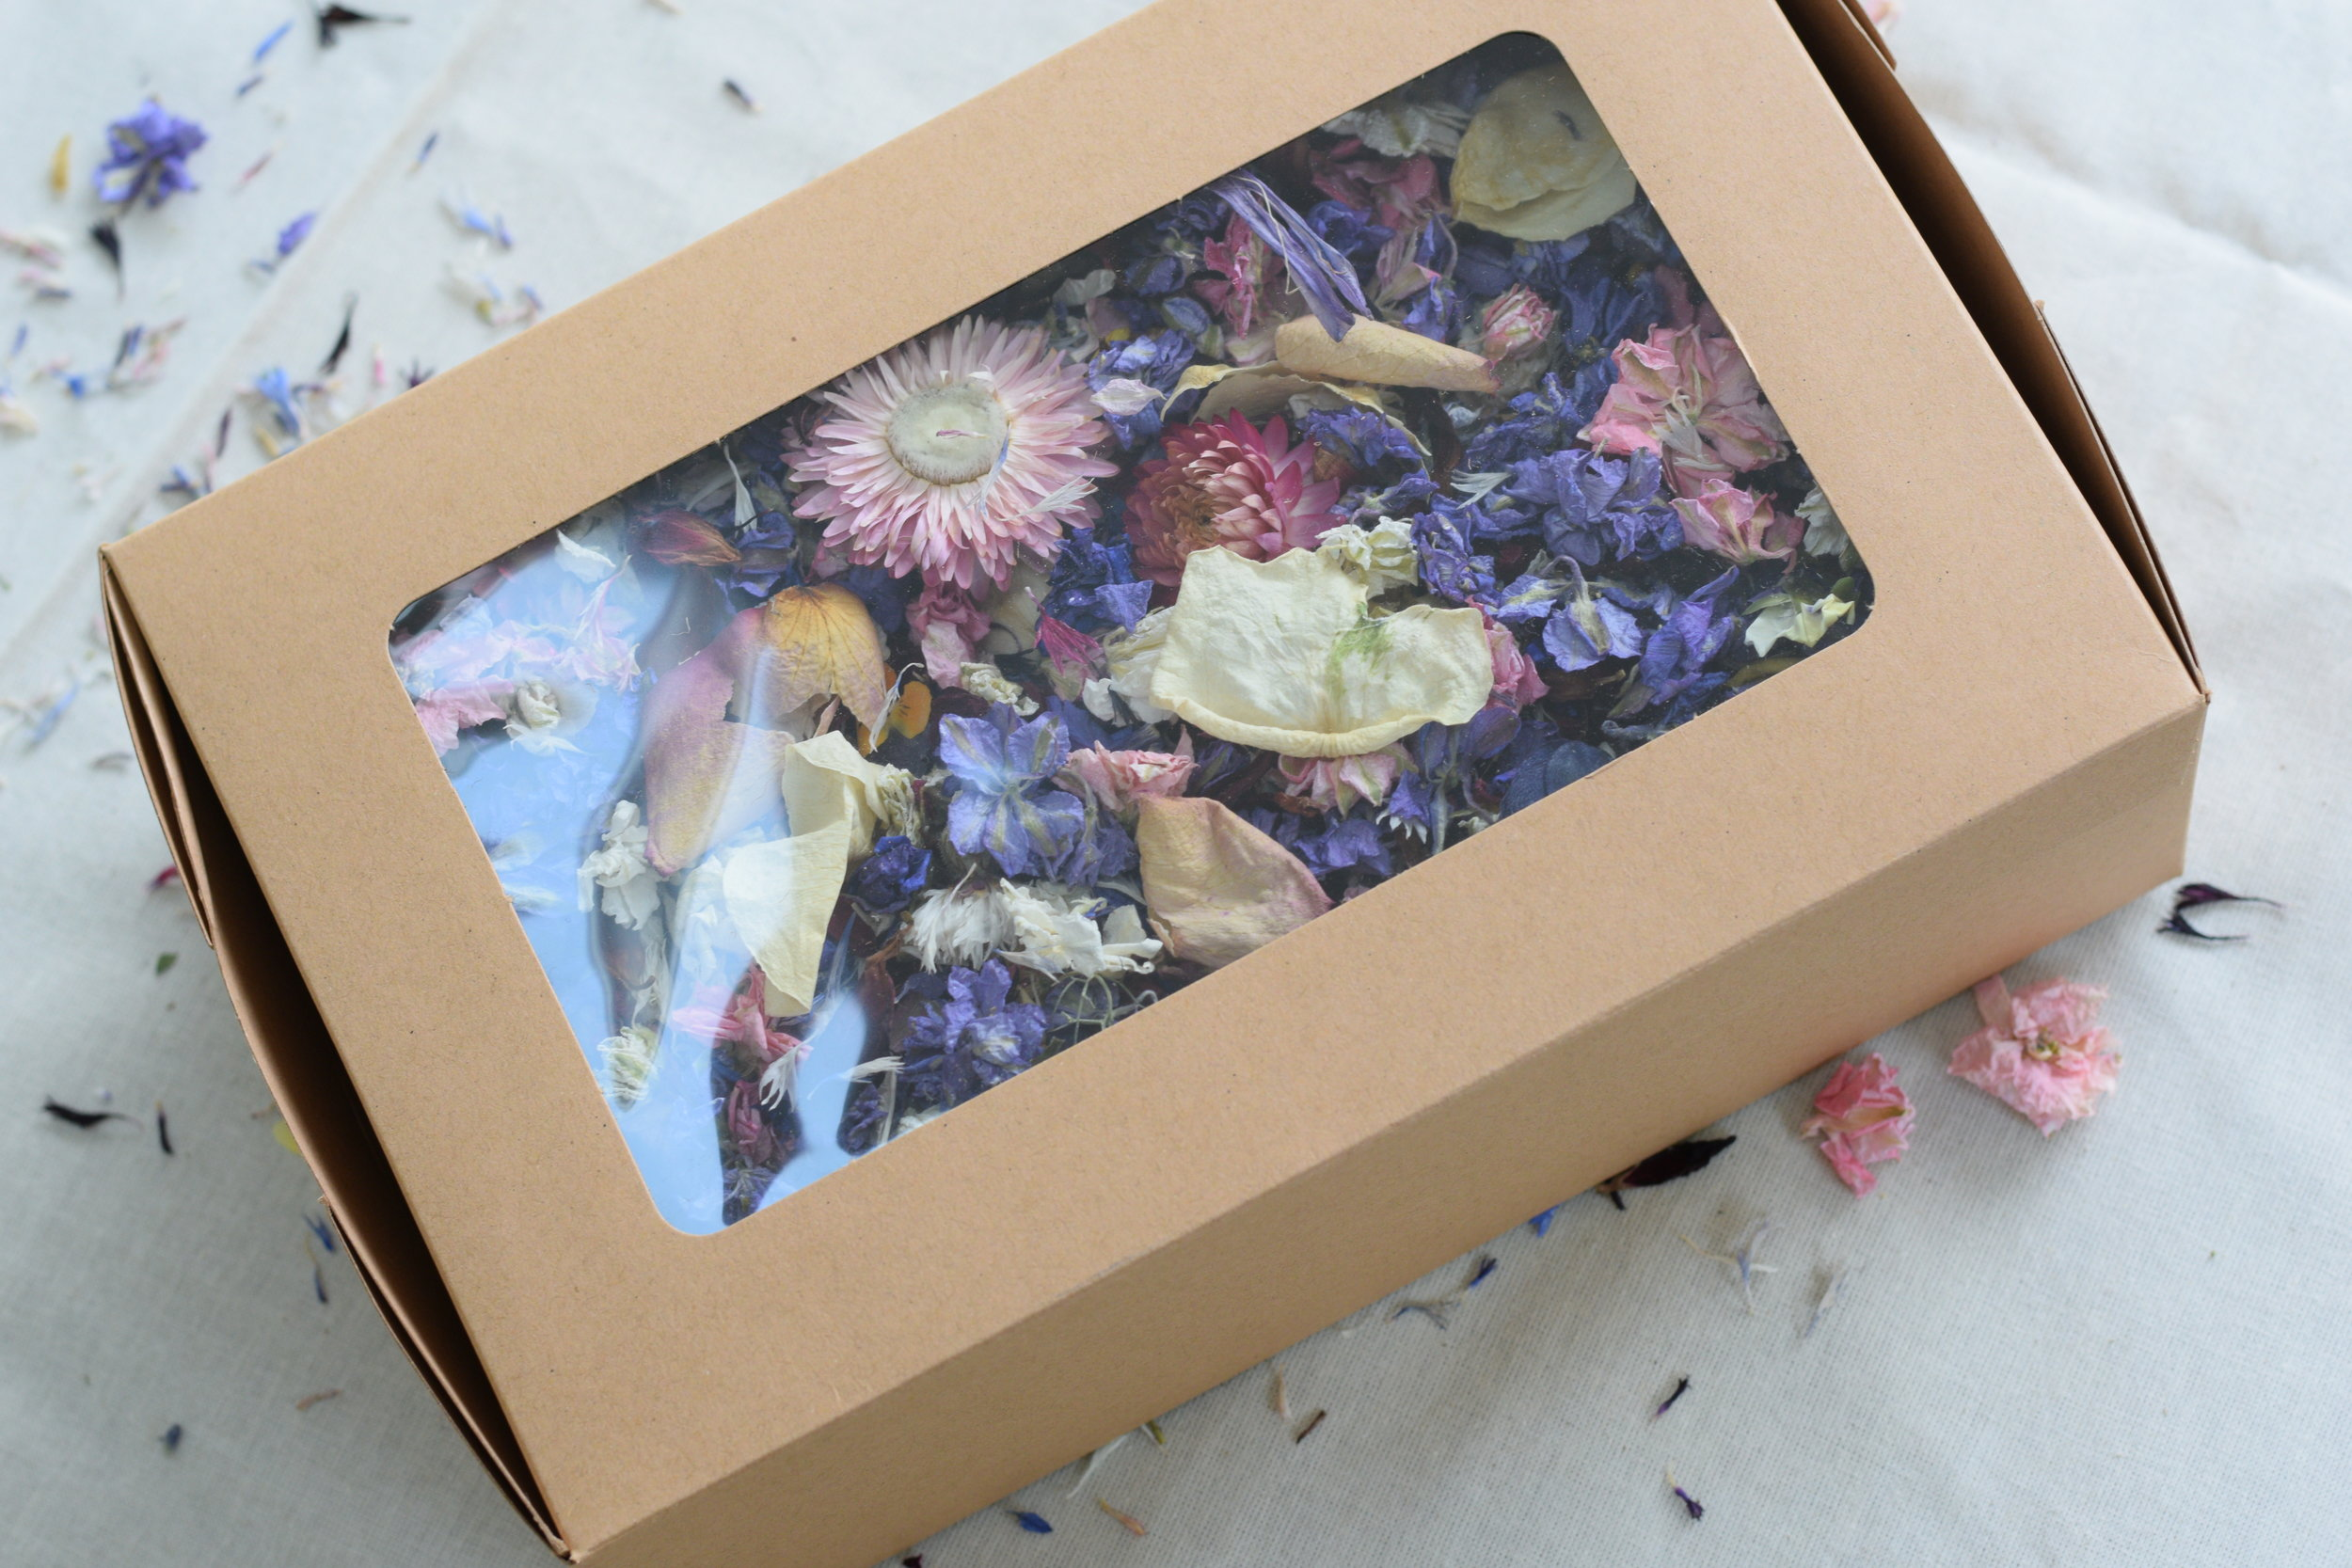 Real Petal Confetti - Let your guests go wild with 100% biodegradable dried petal confetti!.